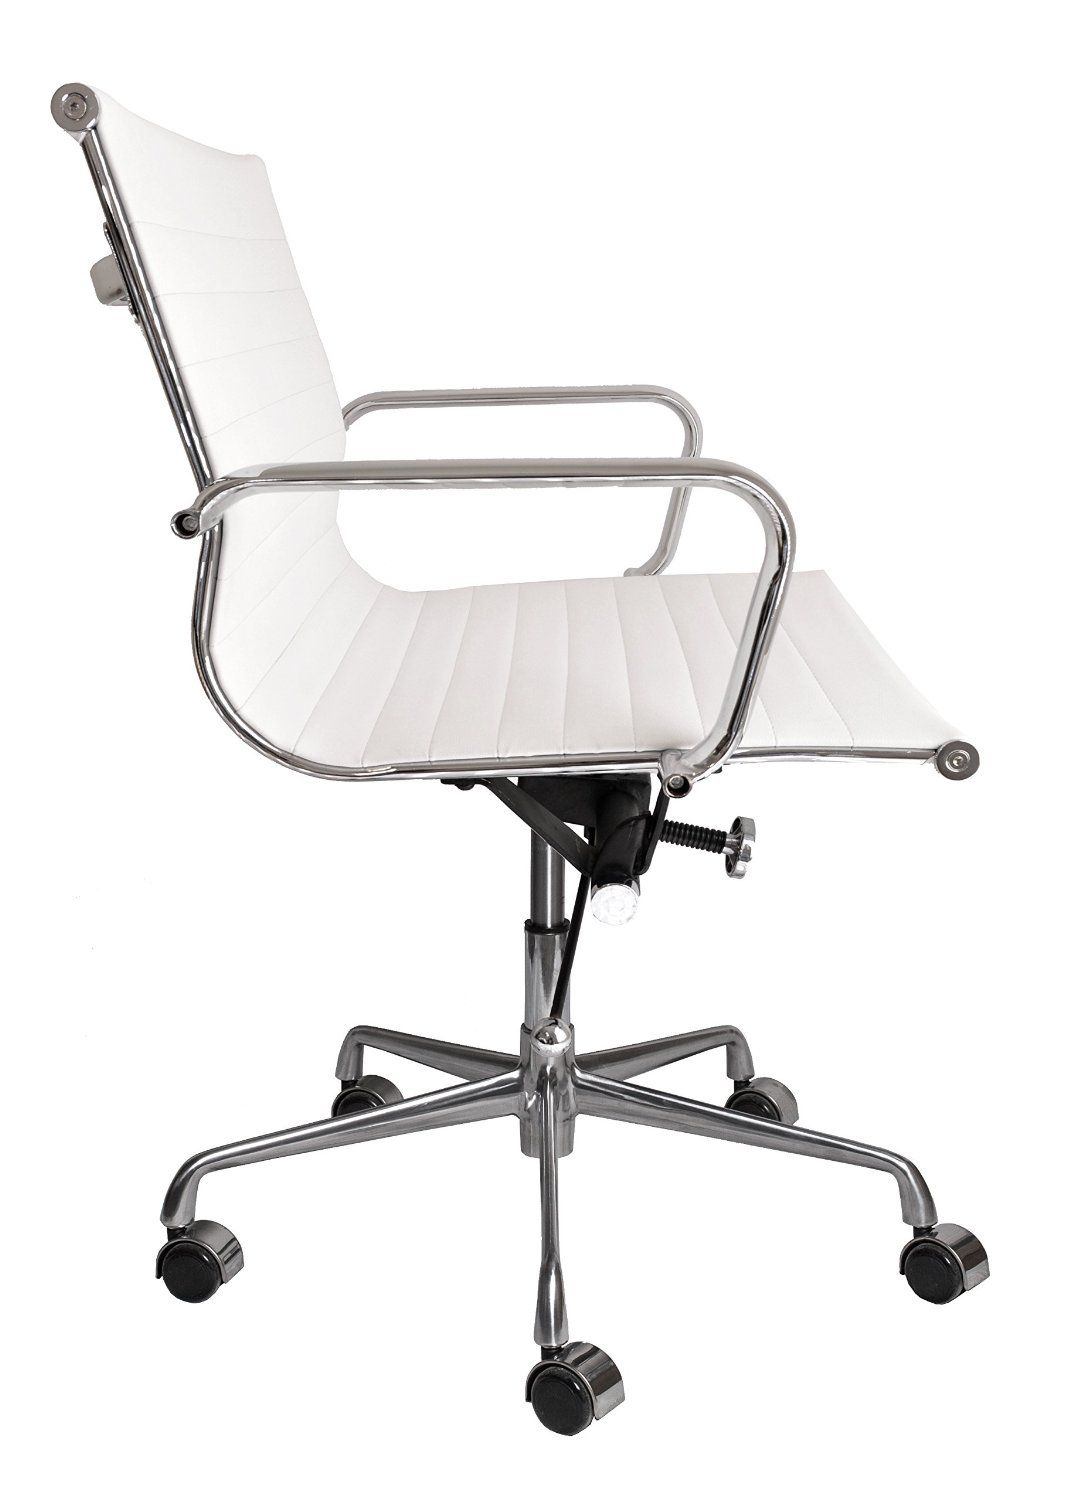 Robot check chair white office chair office chair